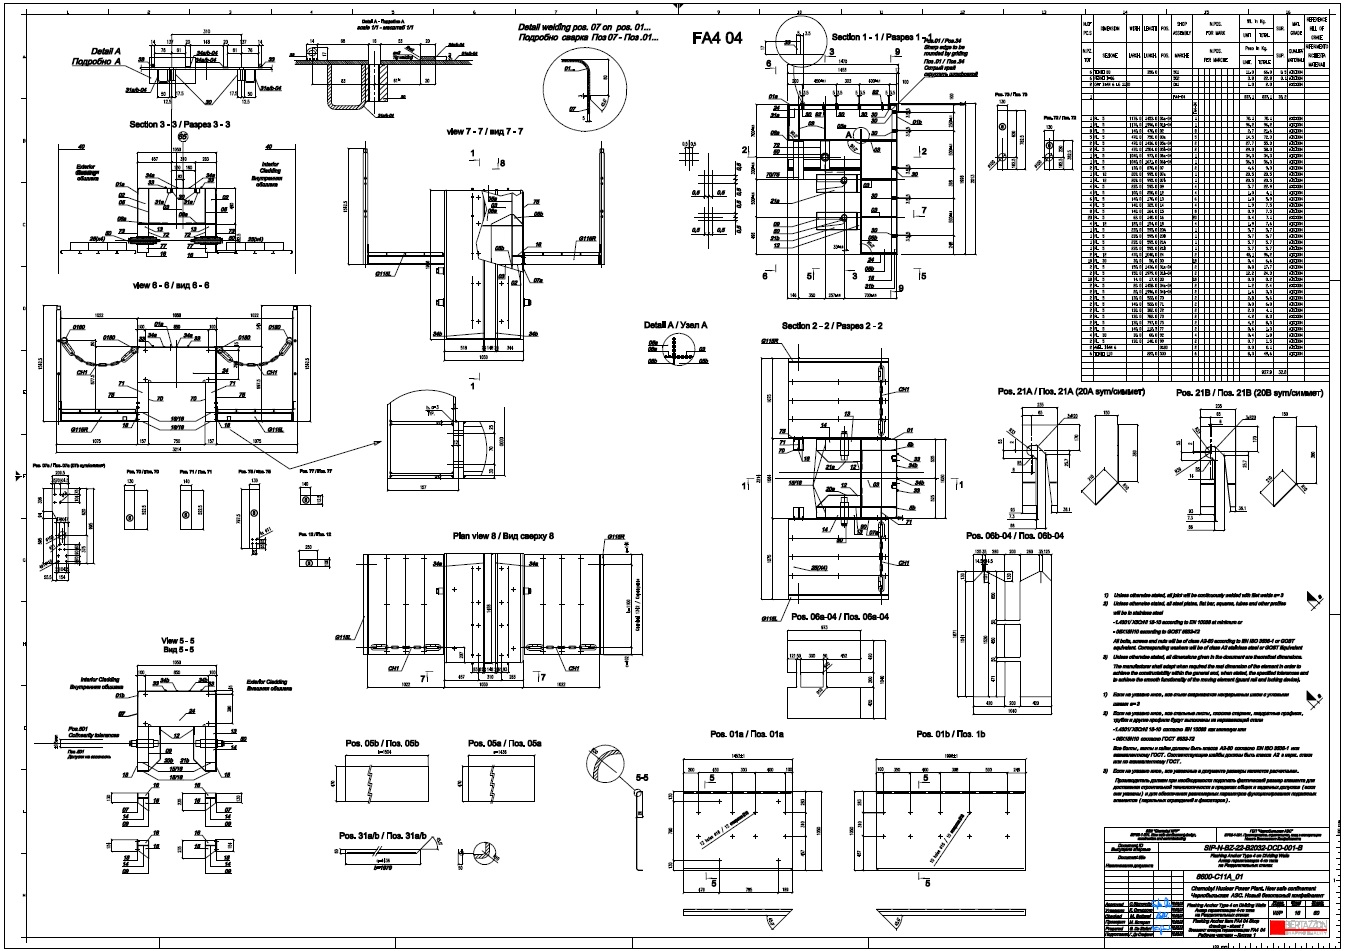 chernobyl nuclear power plant diagram gallery how to guide and refrence. Black Bedroom Furniture Sets. Home Design Ideas